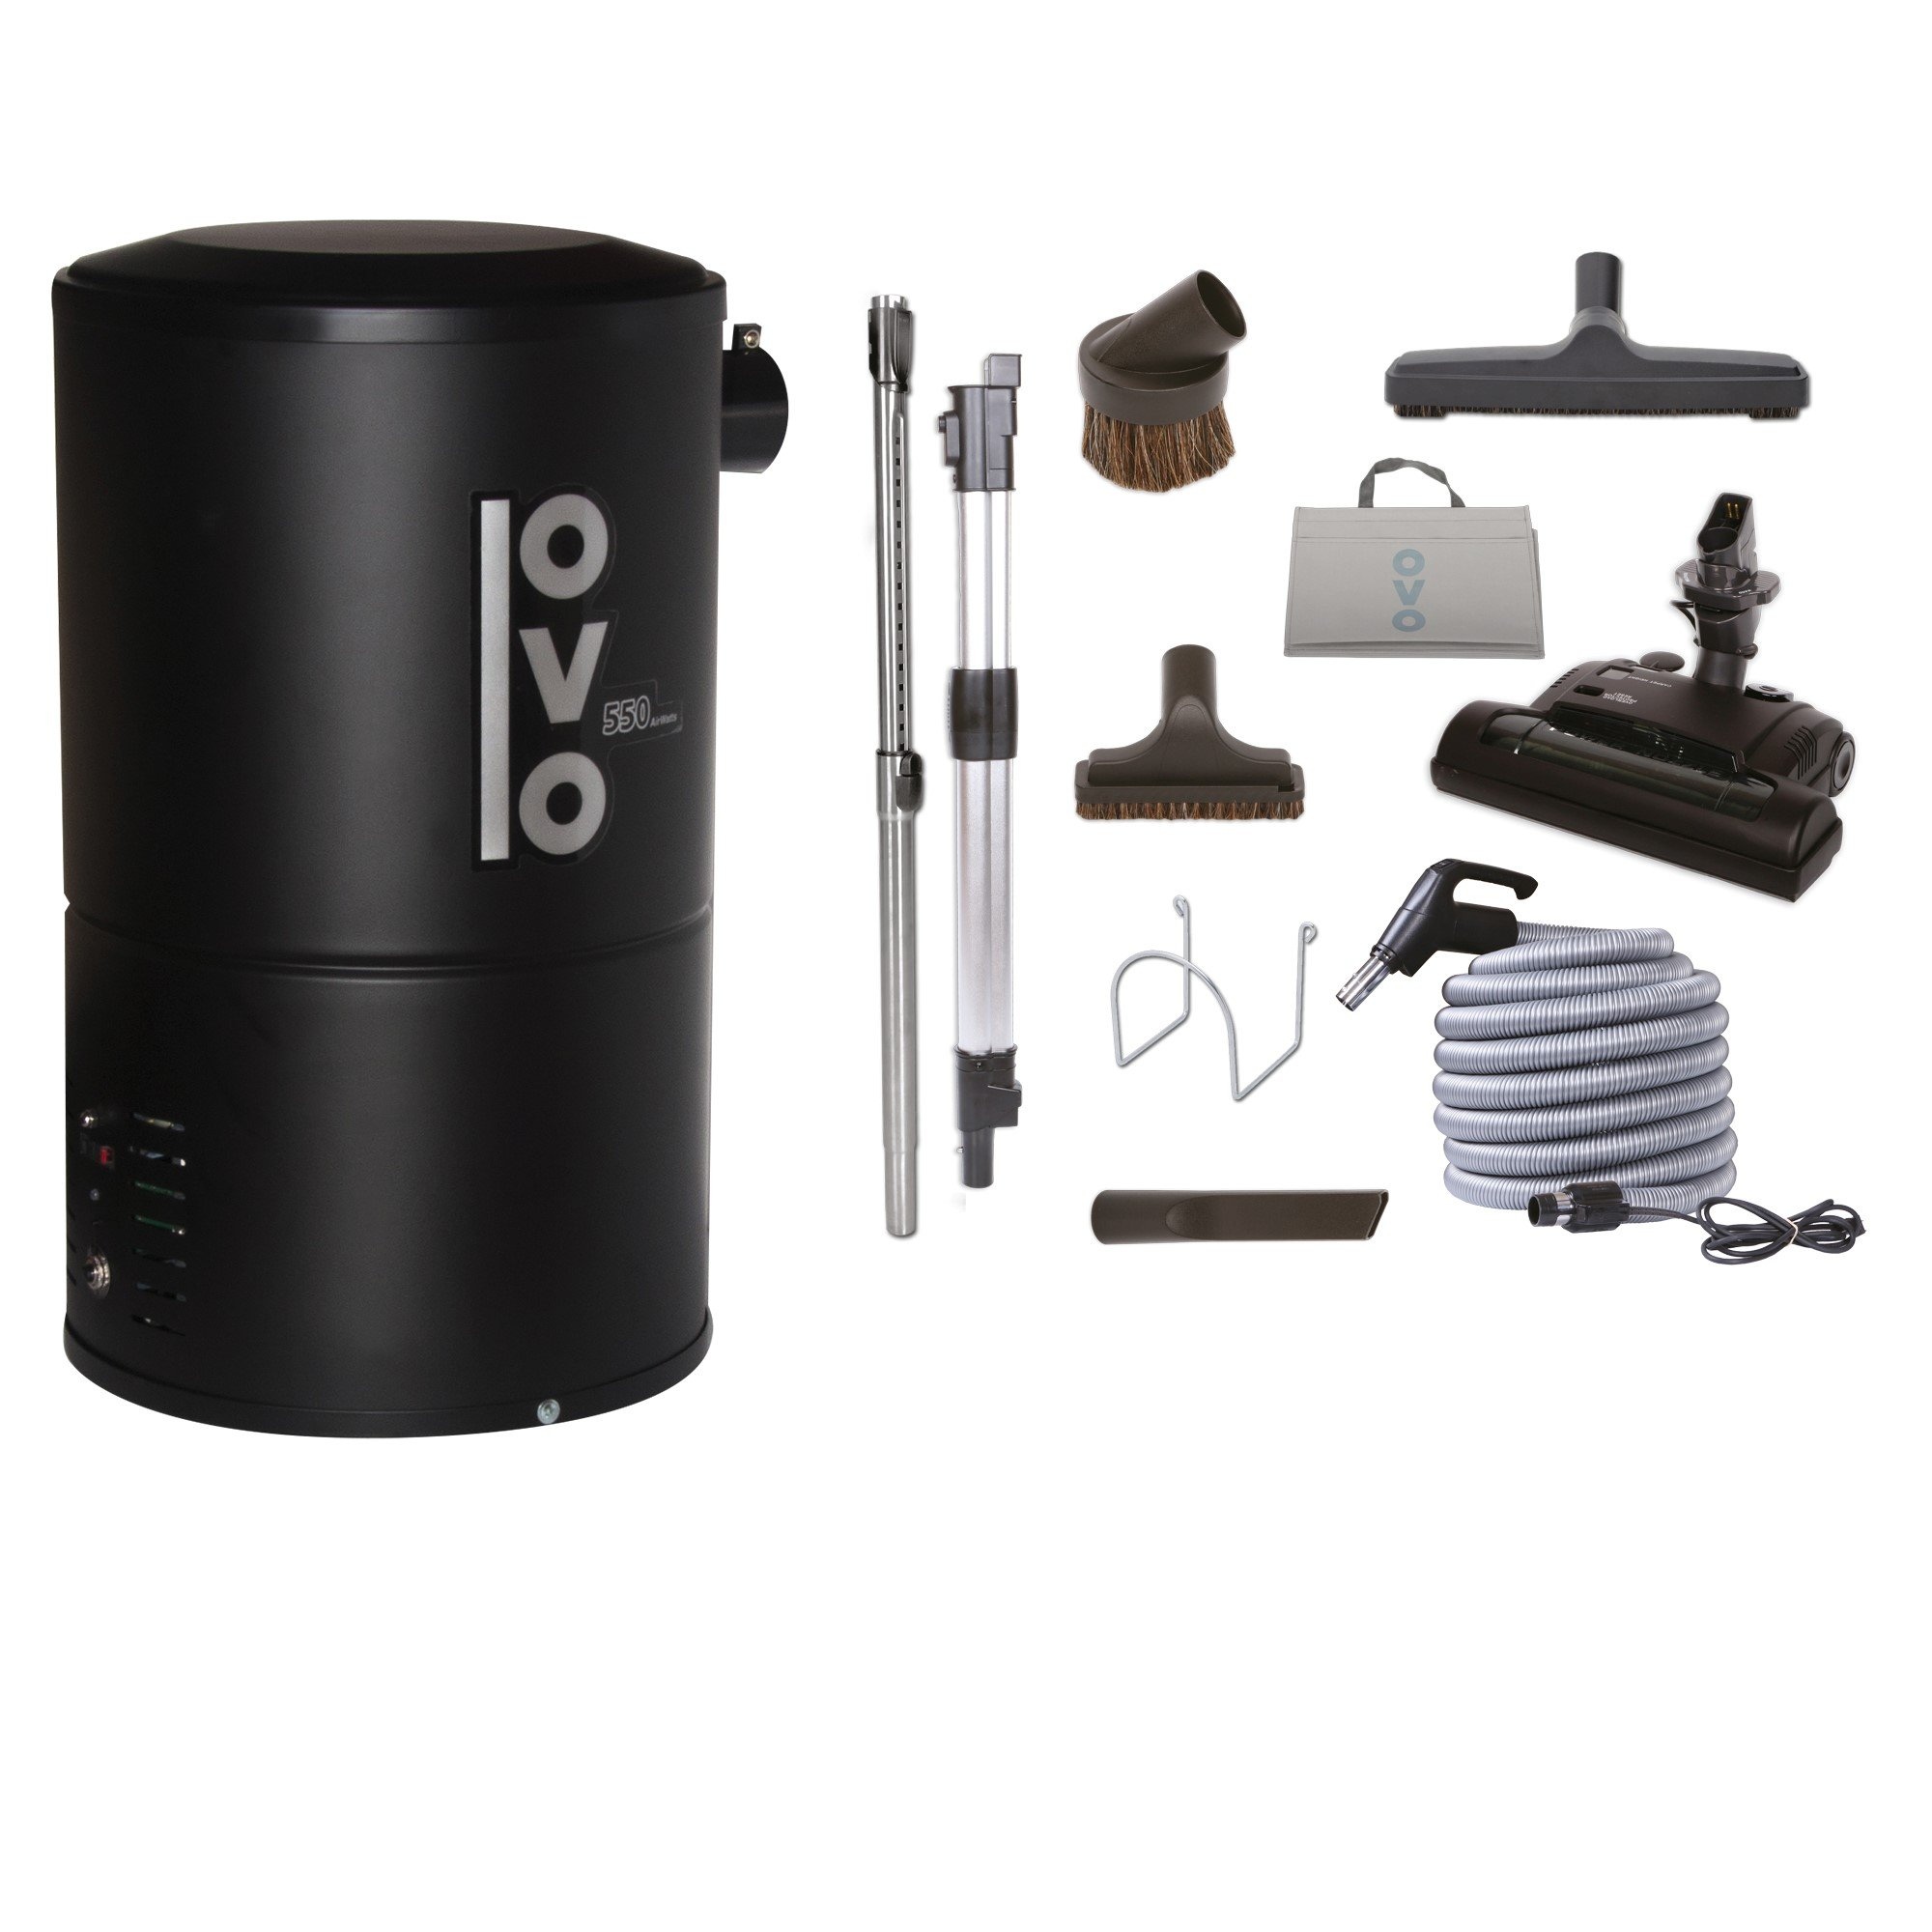 OVO Compact 550 Airwatts System Power Unit with Carpet Deluxe Accessory Kit Included Central Vacuum Cleaner, Condo-Vac, Black by OVO